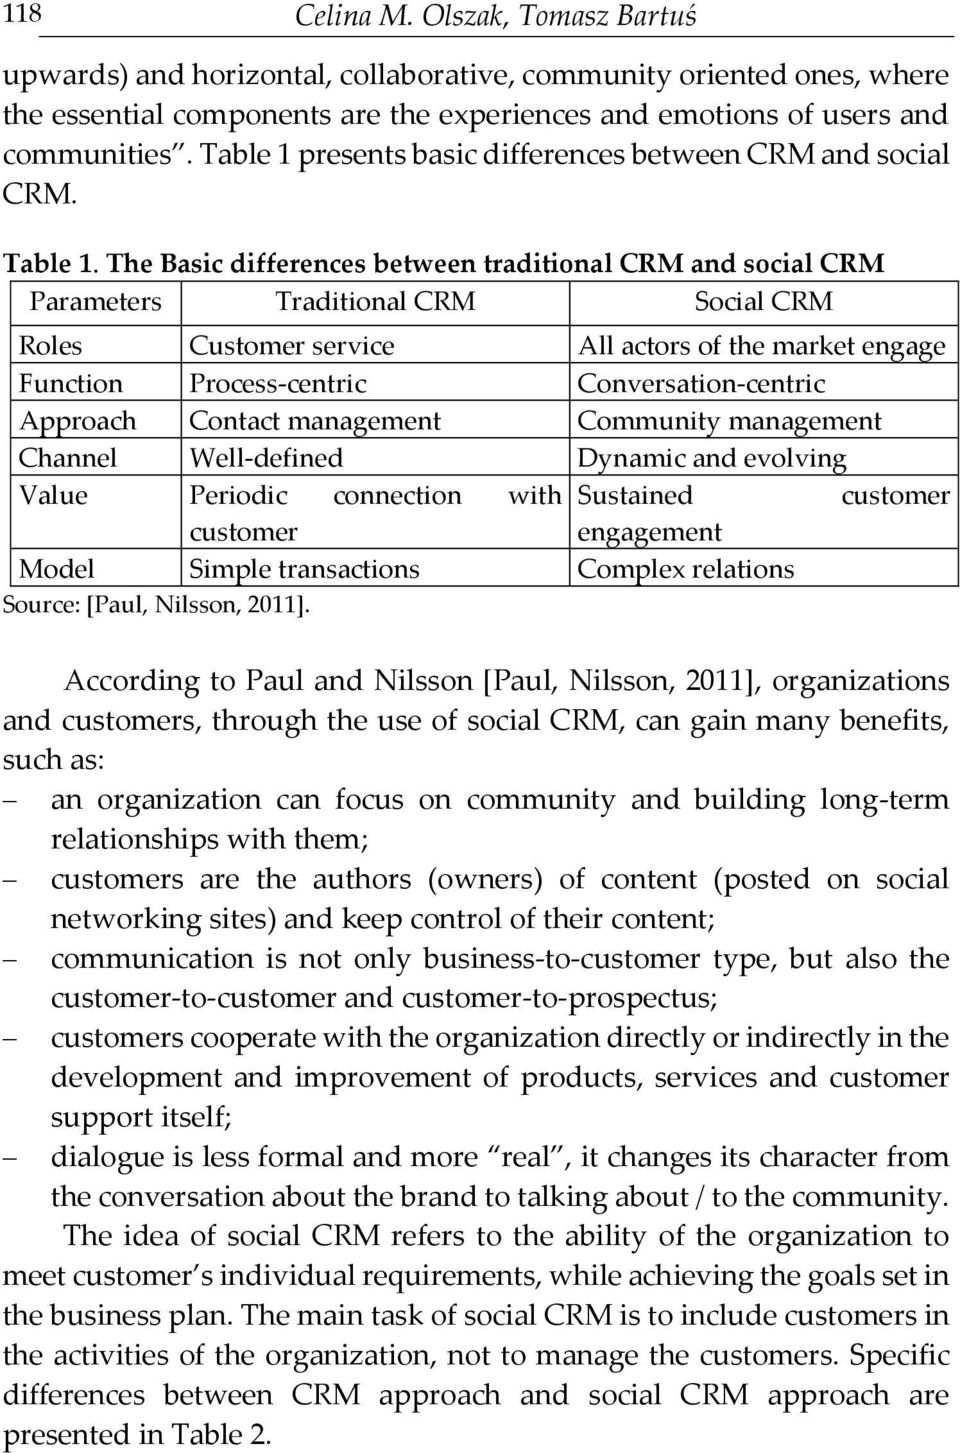 The Basic differences between traditional CRM and social CRM Parameters Traditional CRM Social CRM Roles Customer service All actors of the market engage Function Process-centric Conversation-centric